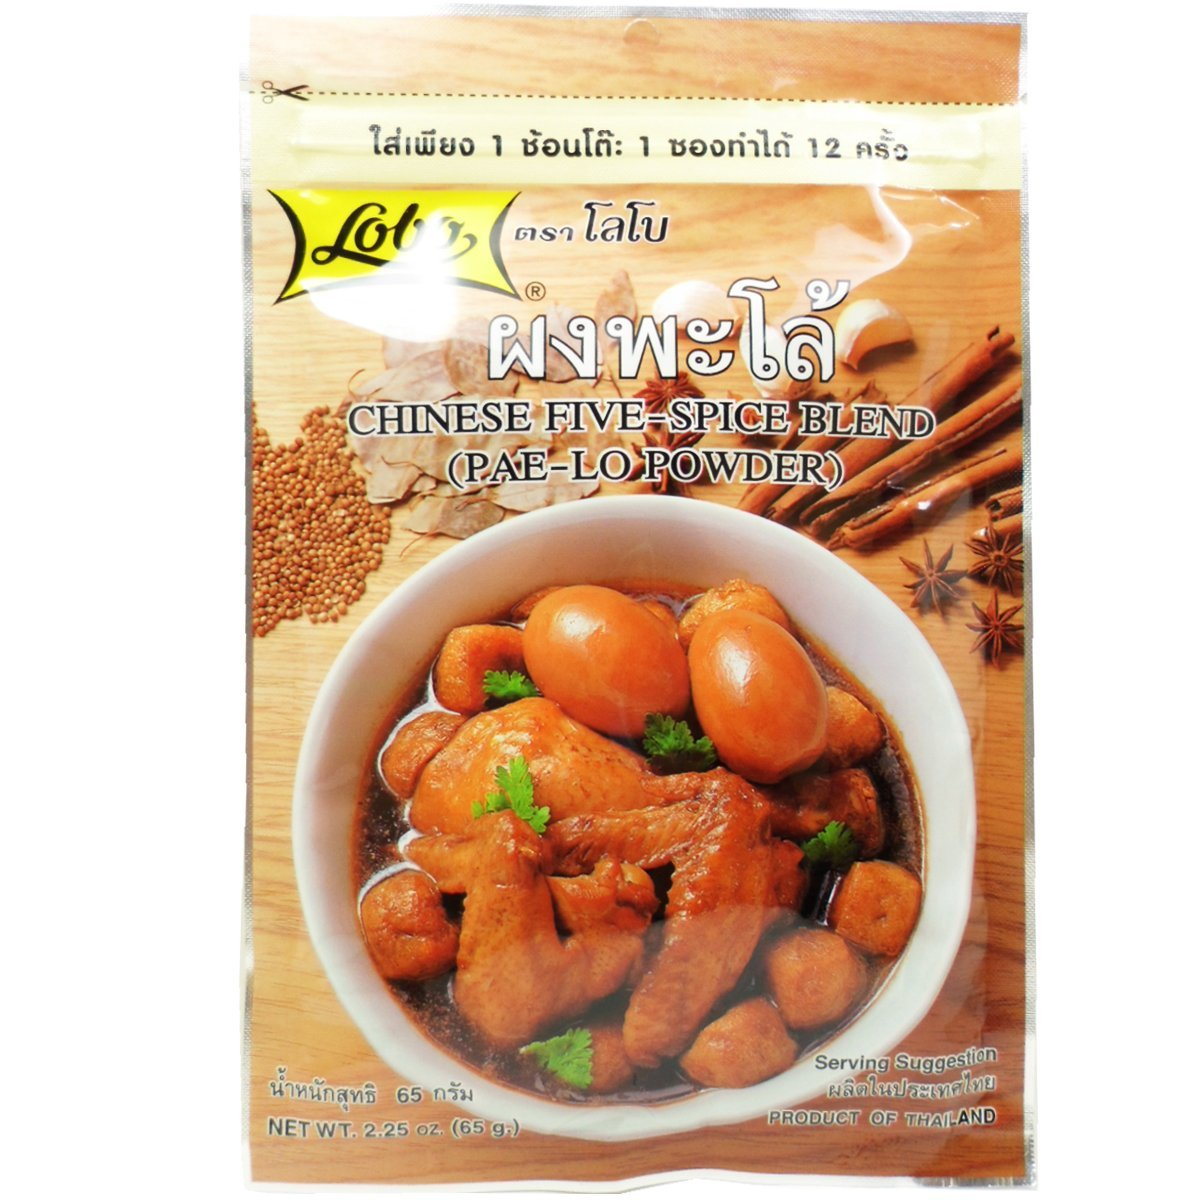 Lobo Chinese Five-spice Blend Pae-lo Powder 65g (Pack of 3 pieces)